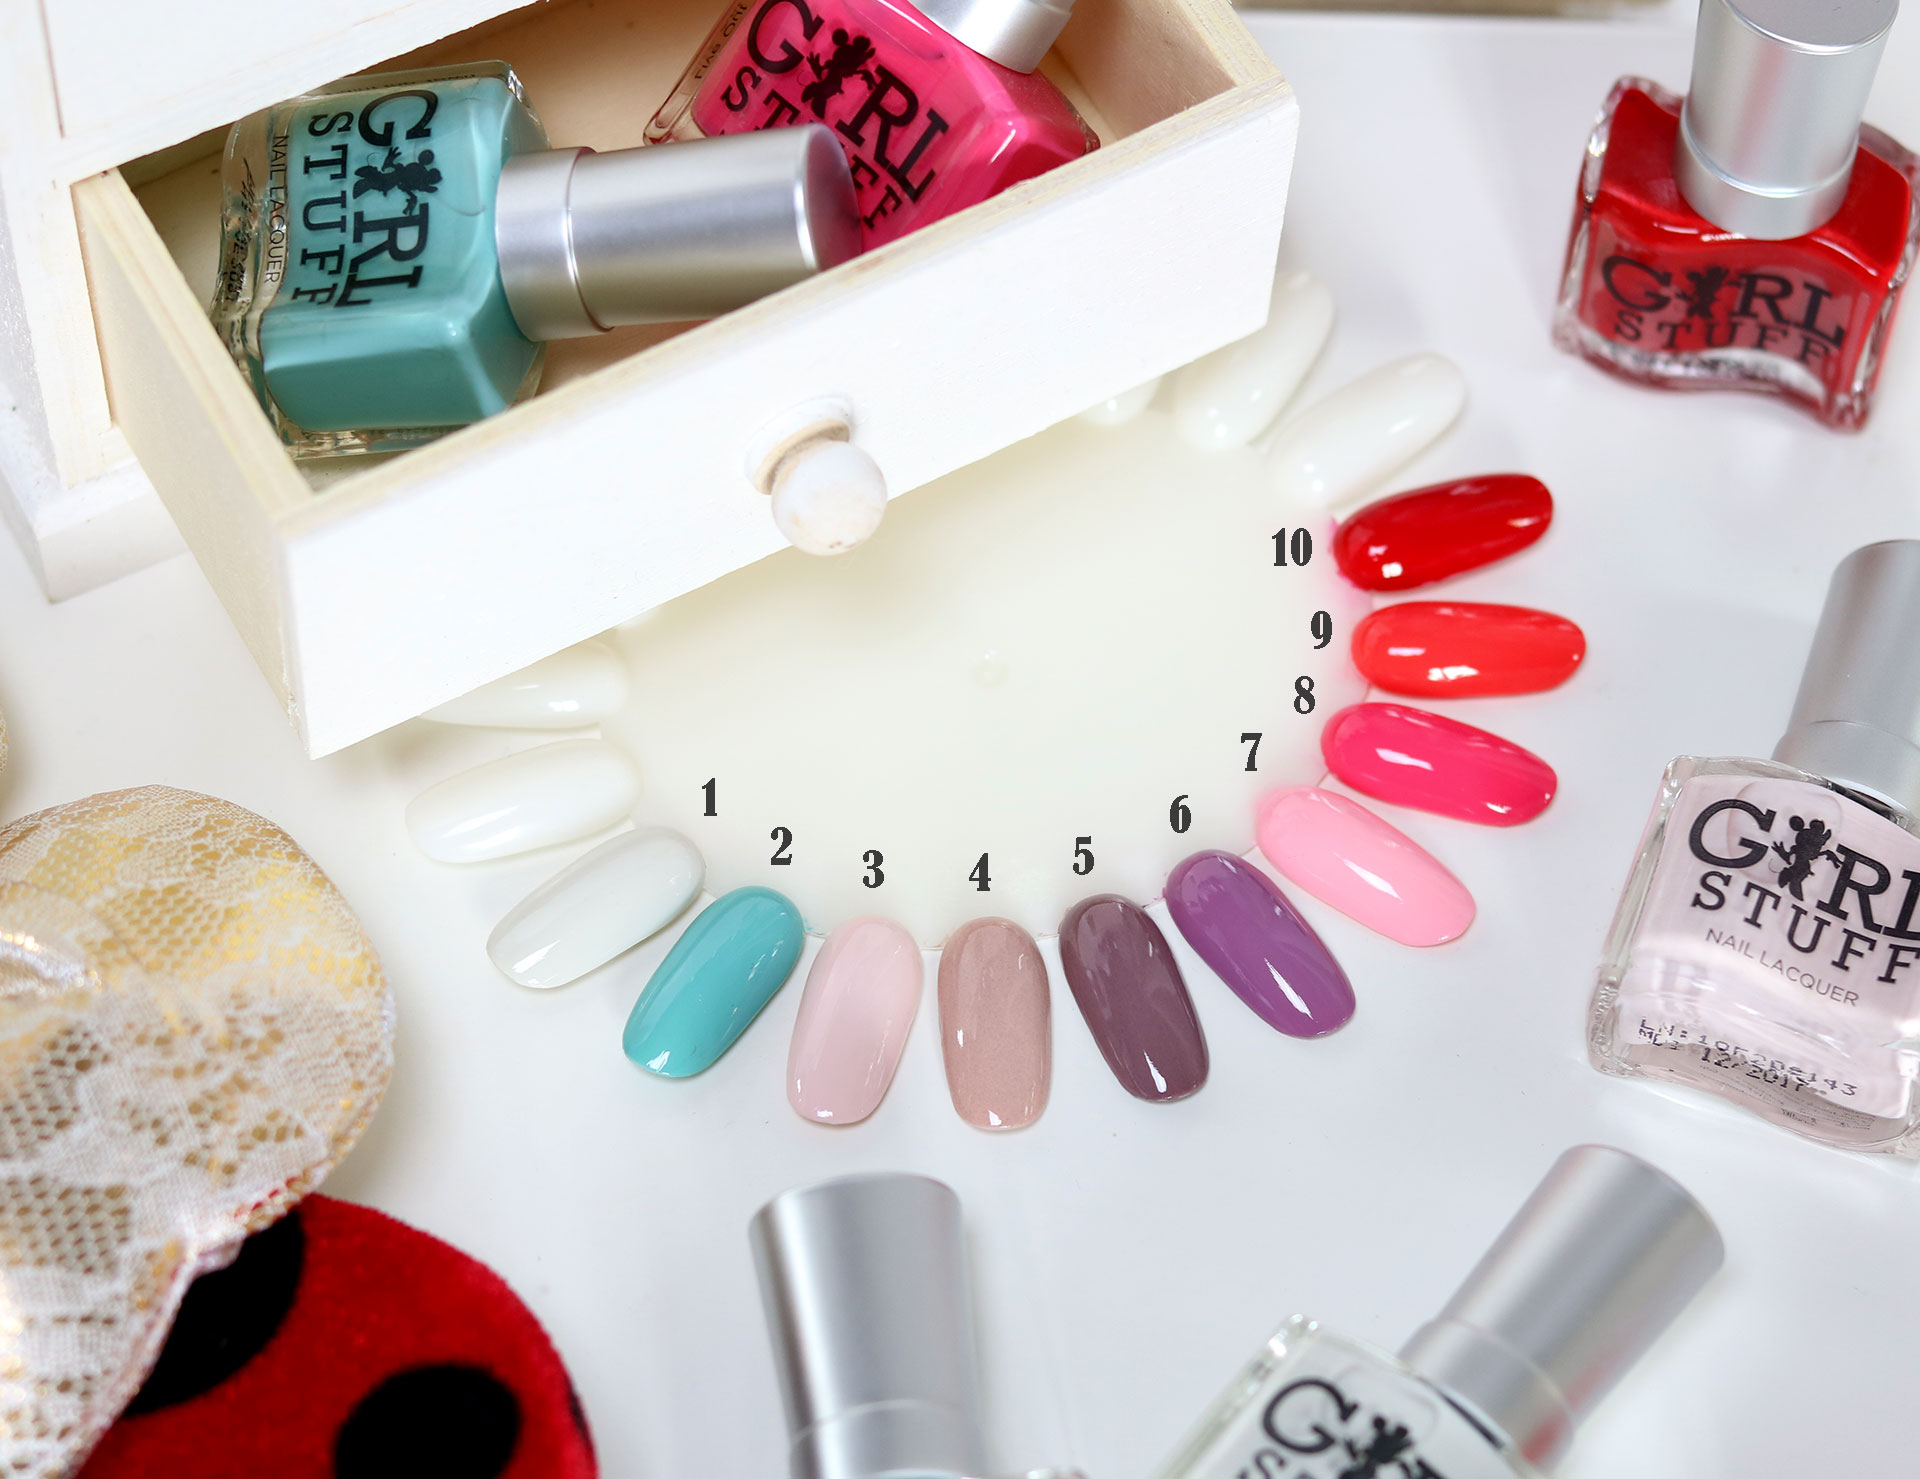 3 Girlstuff Minnie Mouse Nail Lacquers Collection Review Swatches Photos - Gen-zel She Sings Beauty